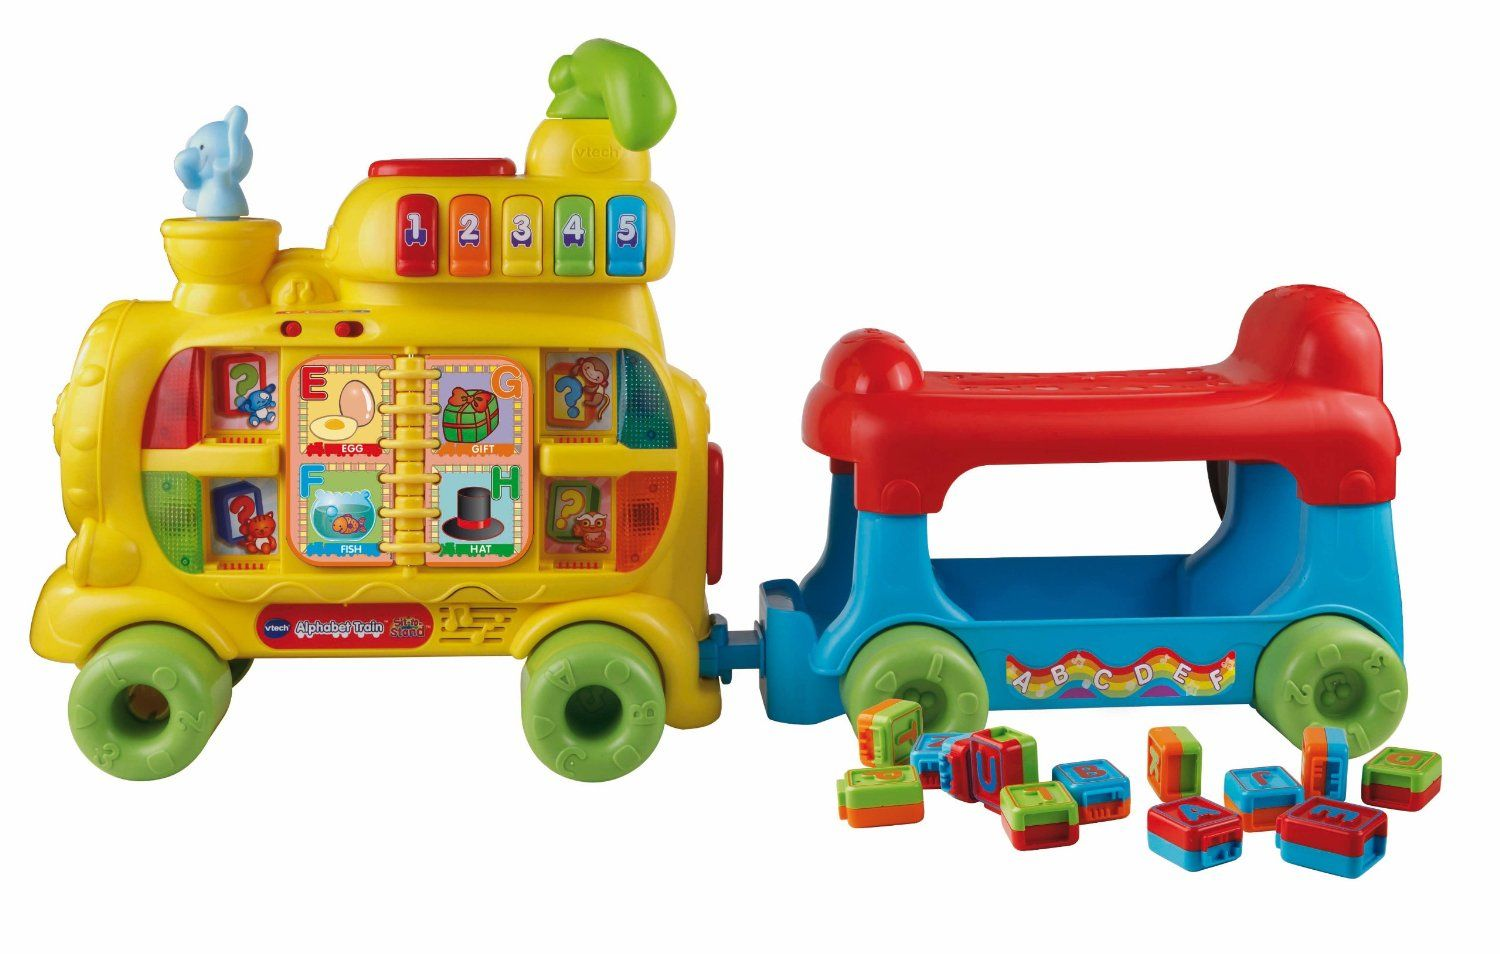 My two youngest would have just DIED over this toy when they were learning to walk. Trains are where it's at people! ThisVTech Sit-to-Stand Alphabet Trainhas so many great things going for it. It has three modes of play: Floor Play Mode, Walker Mode and Ride-On Mode, itteaches your toddler letters, numbers, colors, songs, stories and more, and it hasmotion sensors that activate sound when moving. This toy comes recommended for children ages 1 to 3, but I bet even 8 or 9 month olds would…